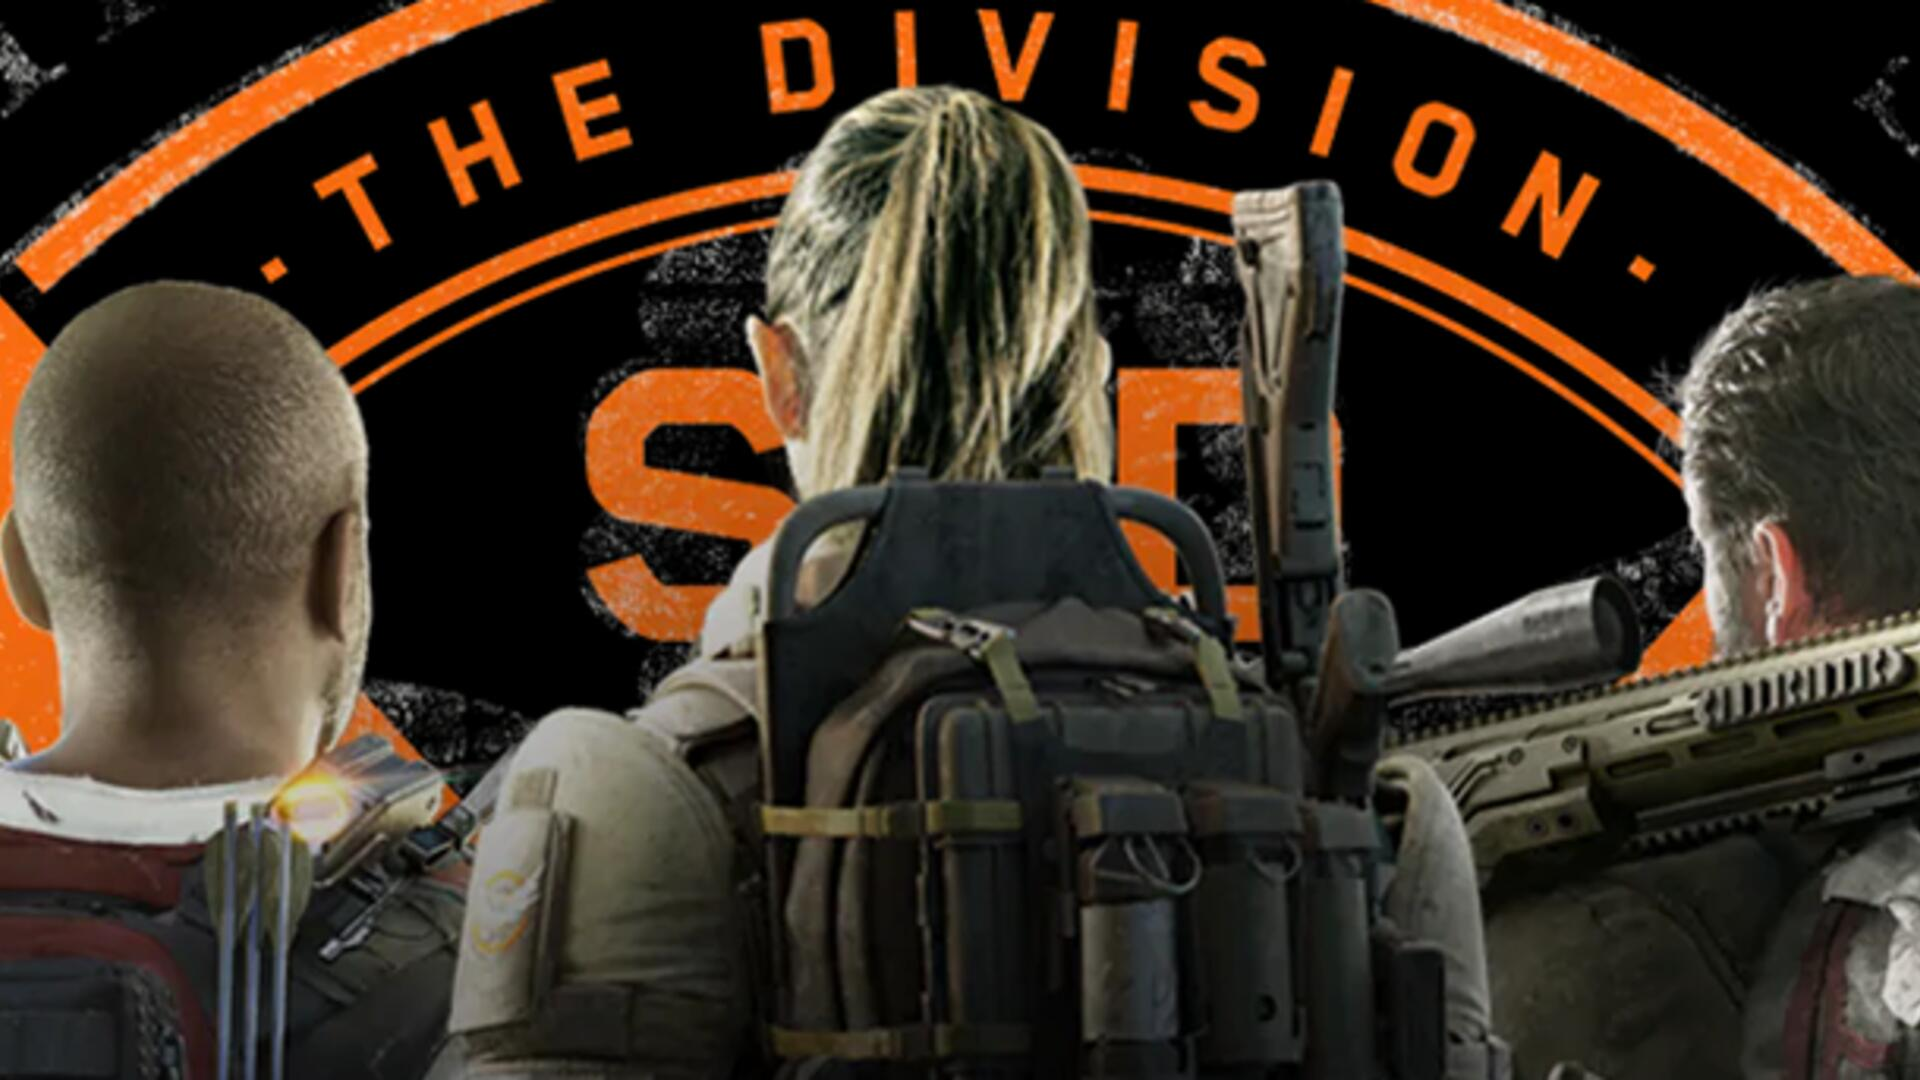 The Division 2 Skill Power Explained - How to Boost Skill Power and Use Skill Mods in The Division 2